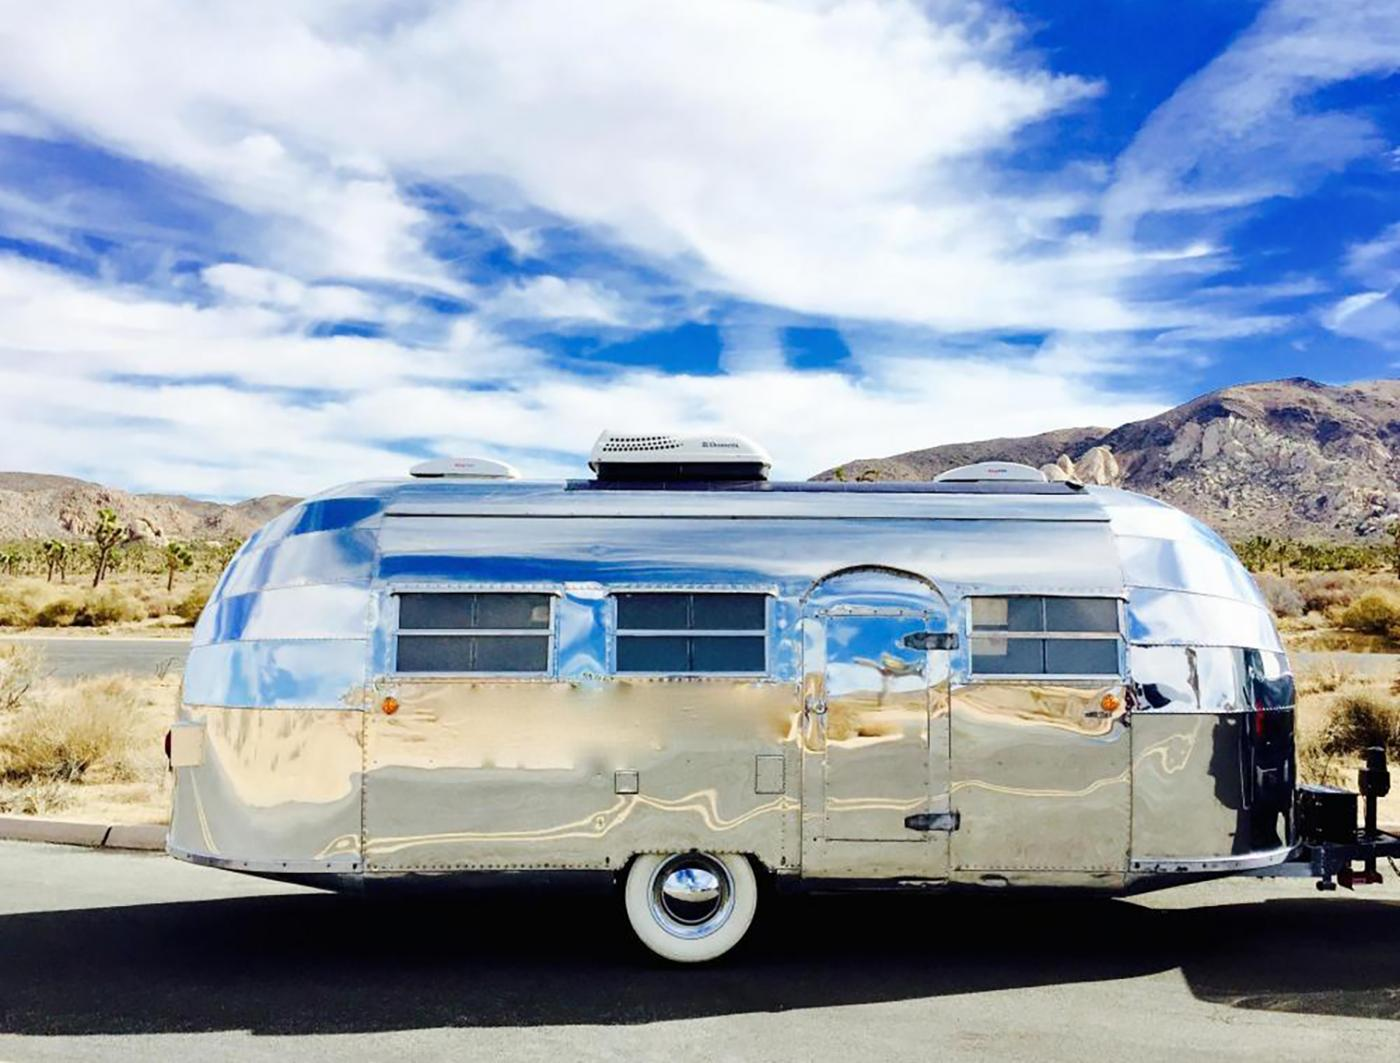 Travel across the nation in this home on wheels